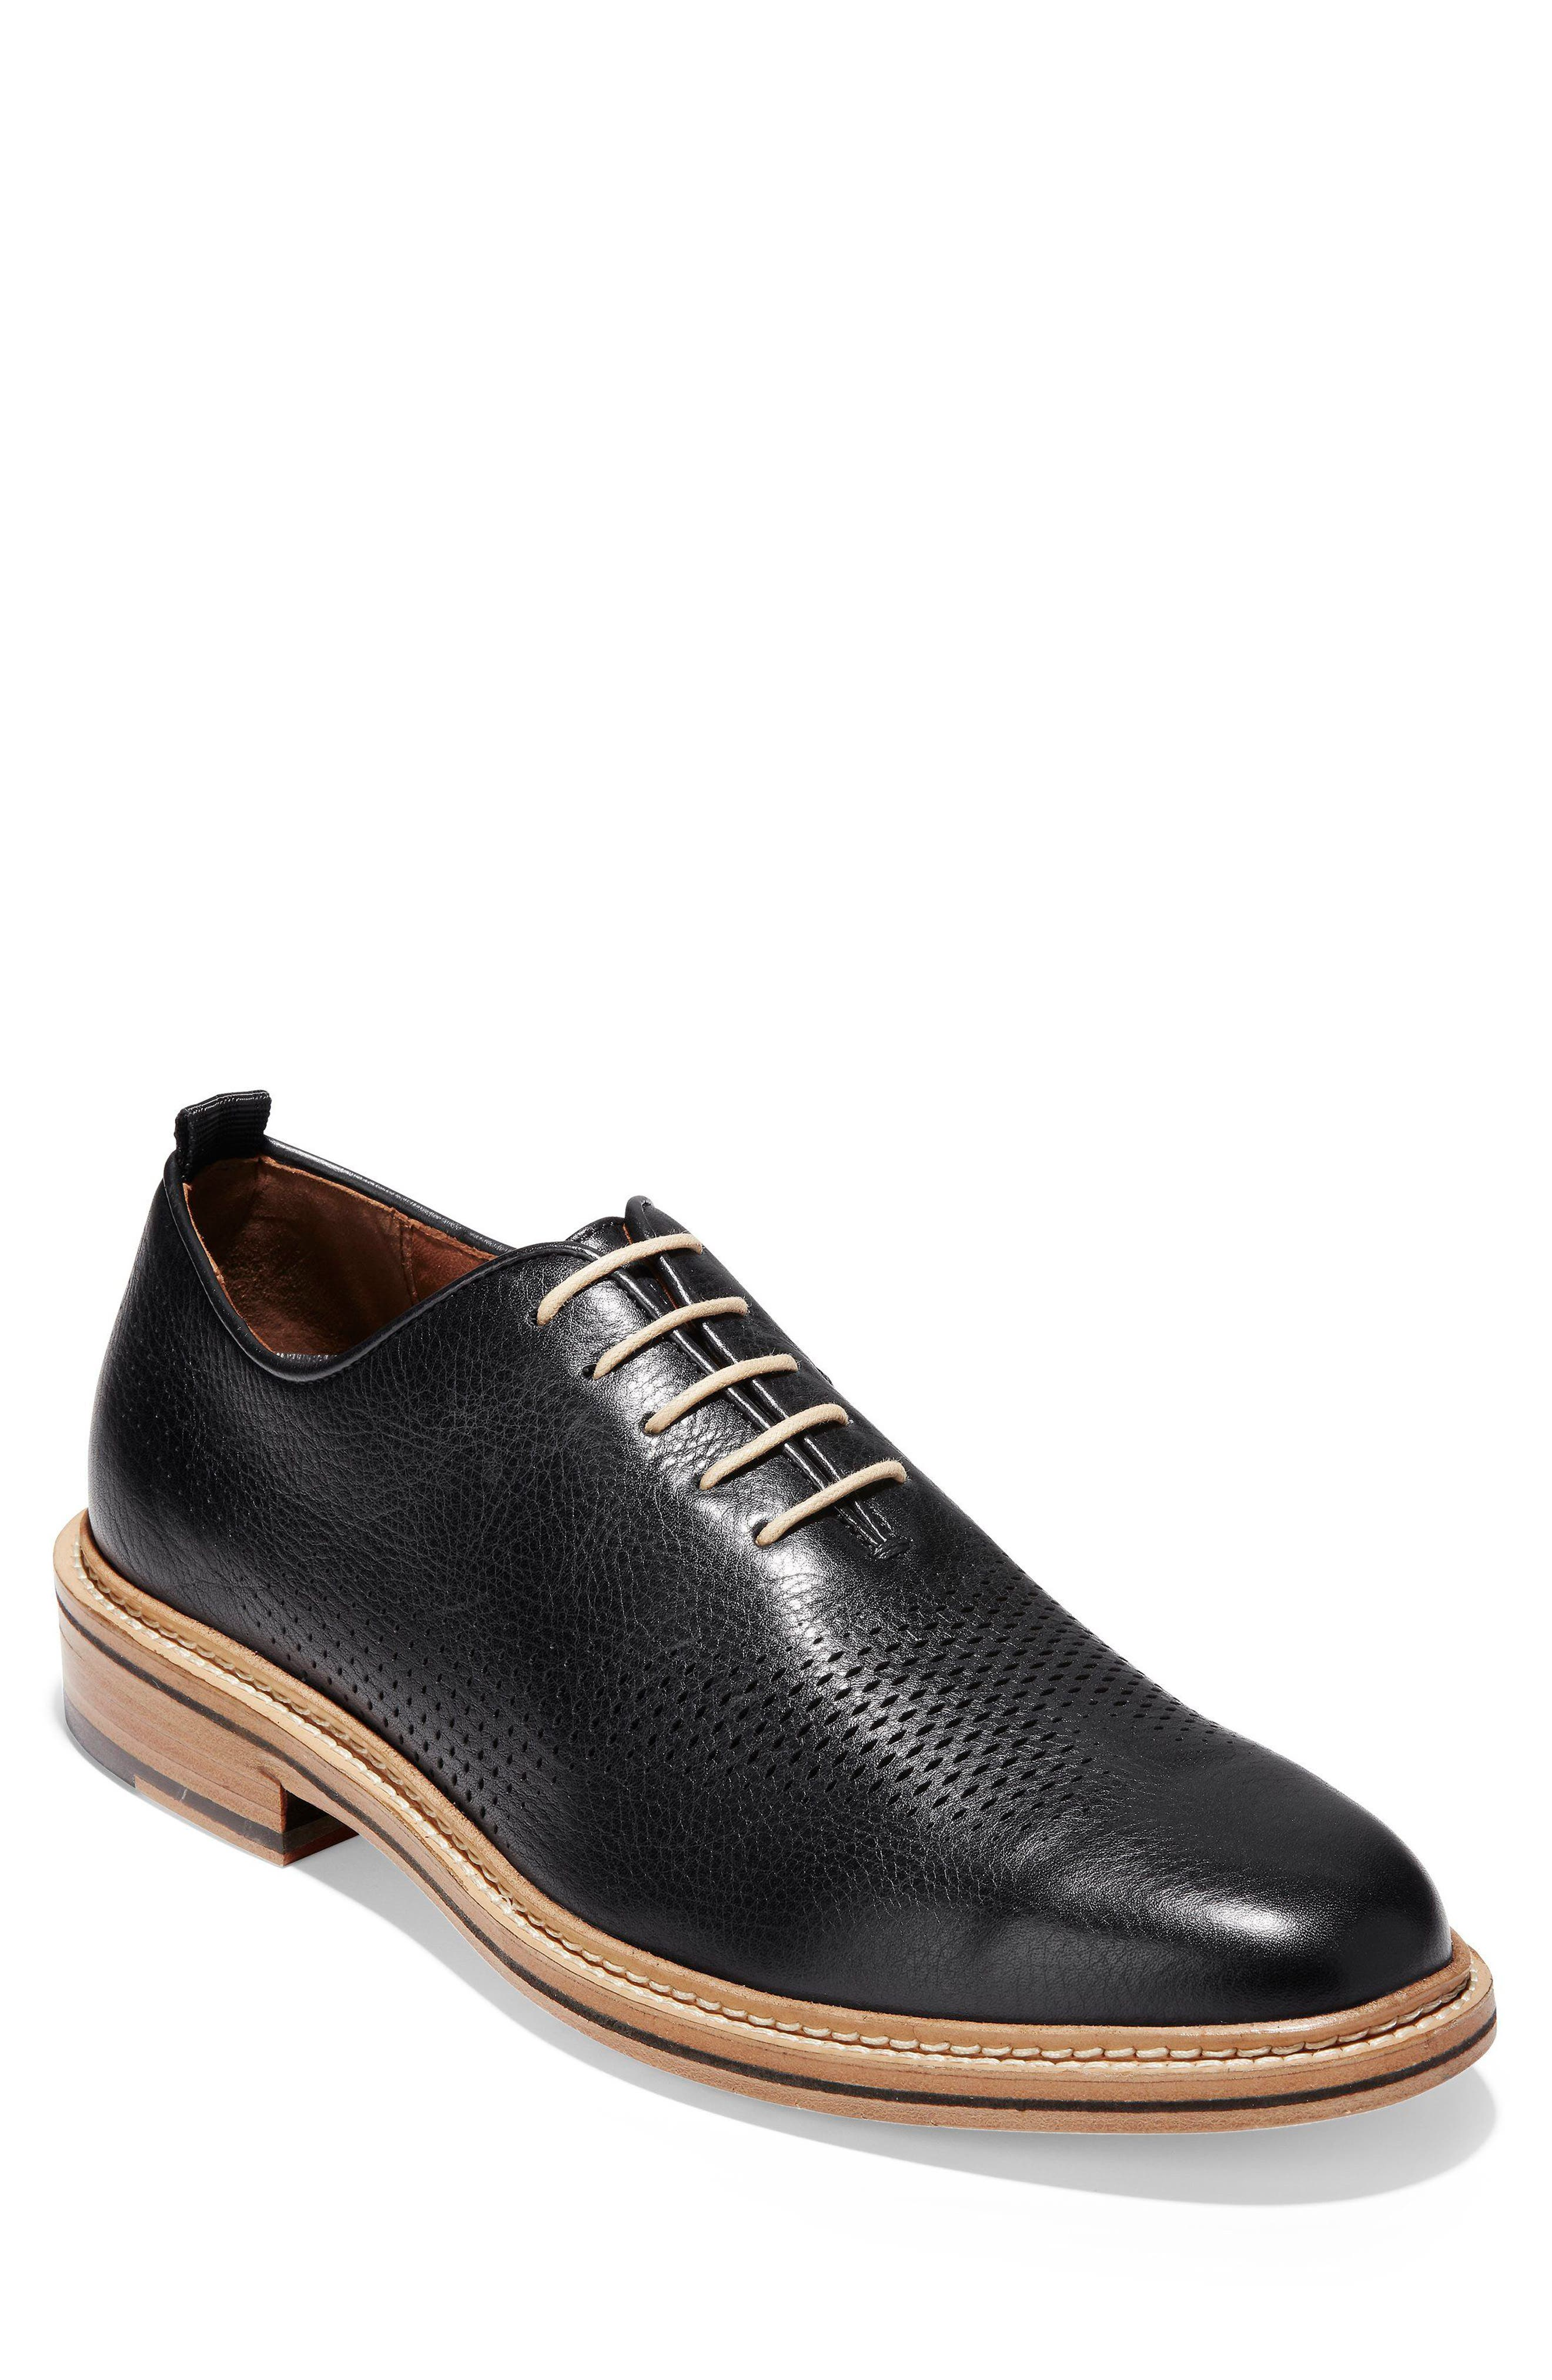 Washington Grand Wingtip,                         Main,                         color, Black Leather